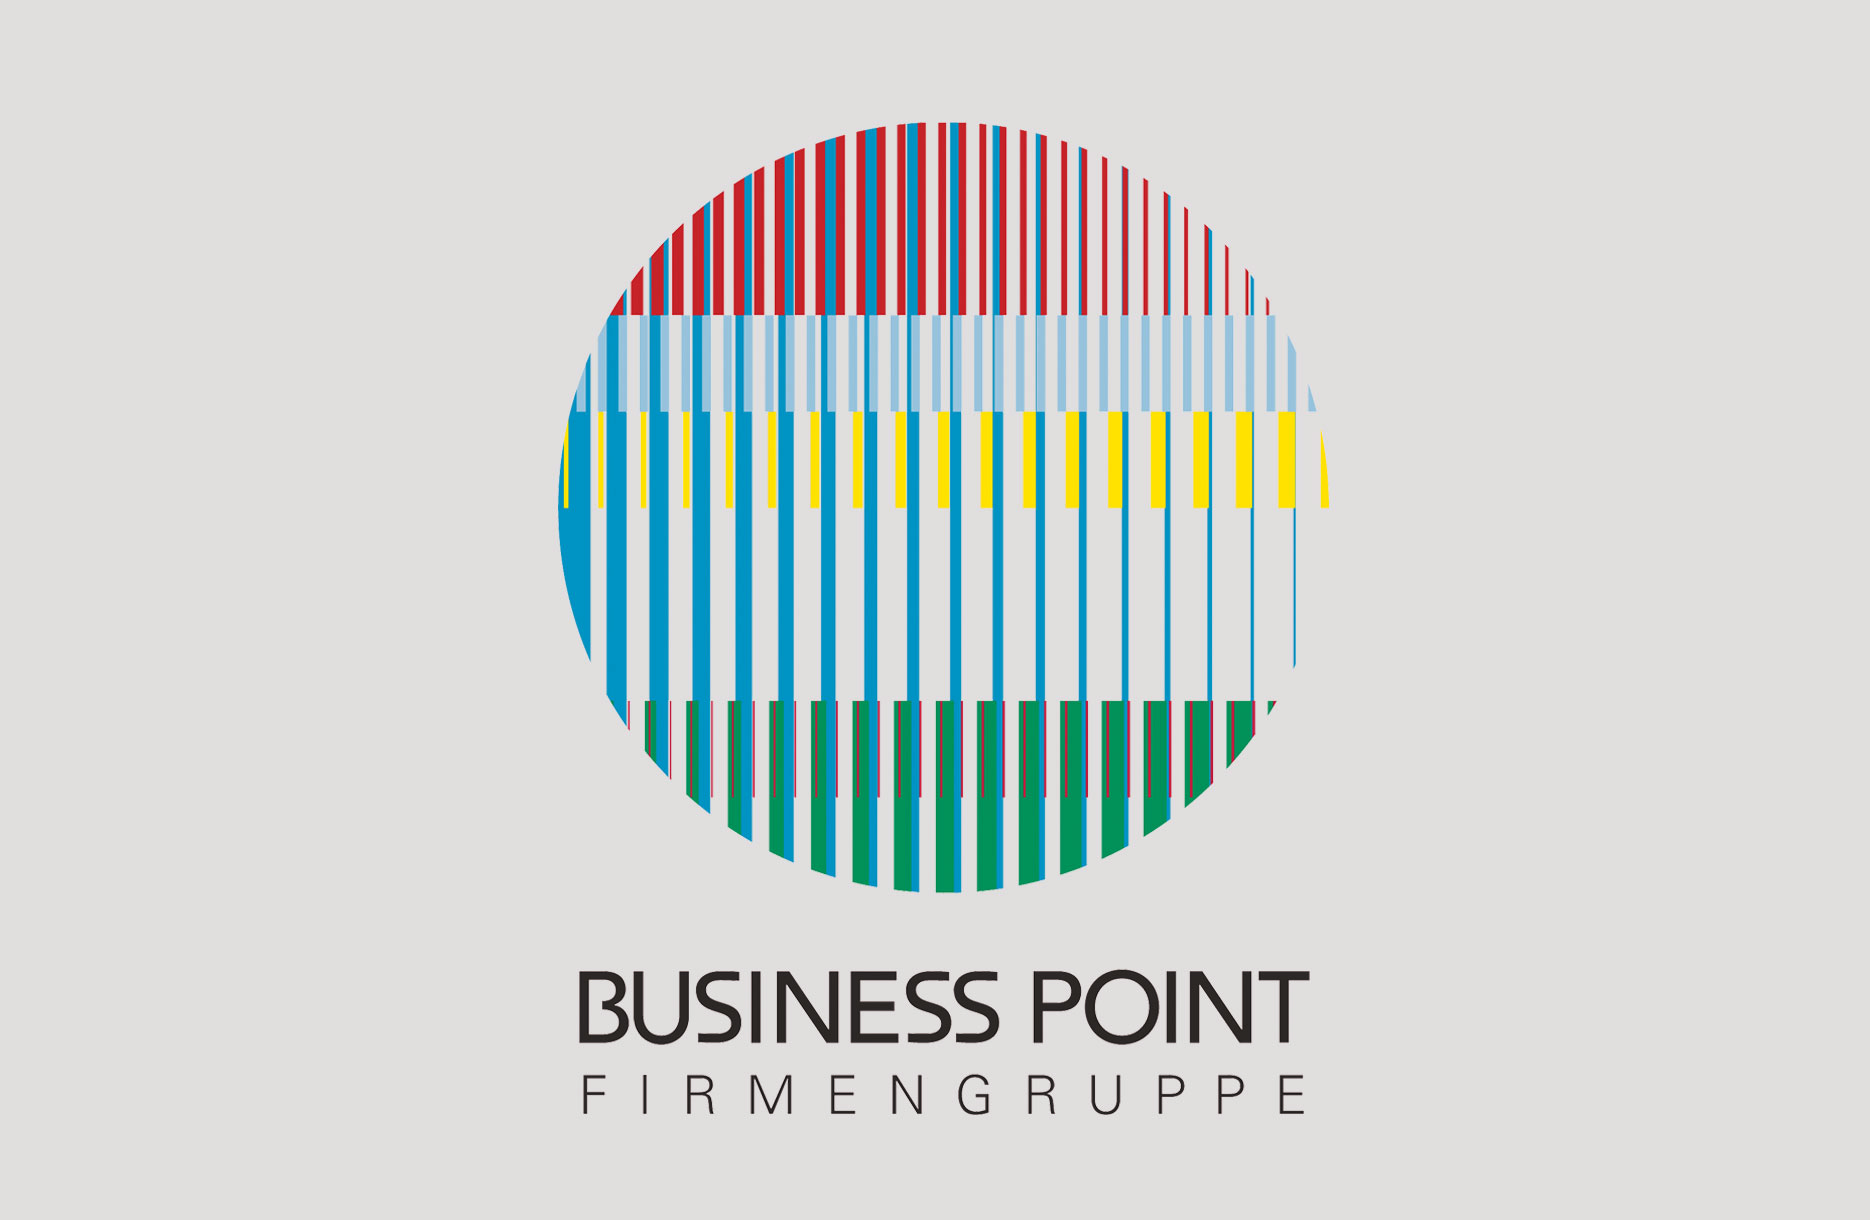 Business Point Firmengruppe